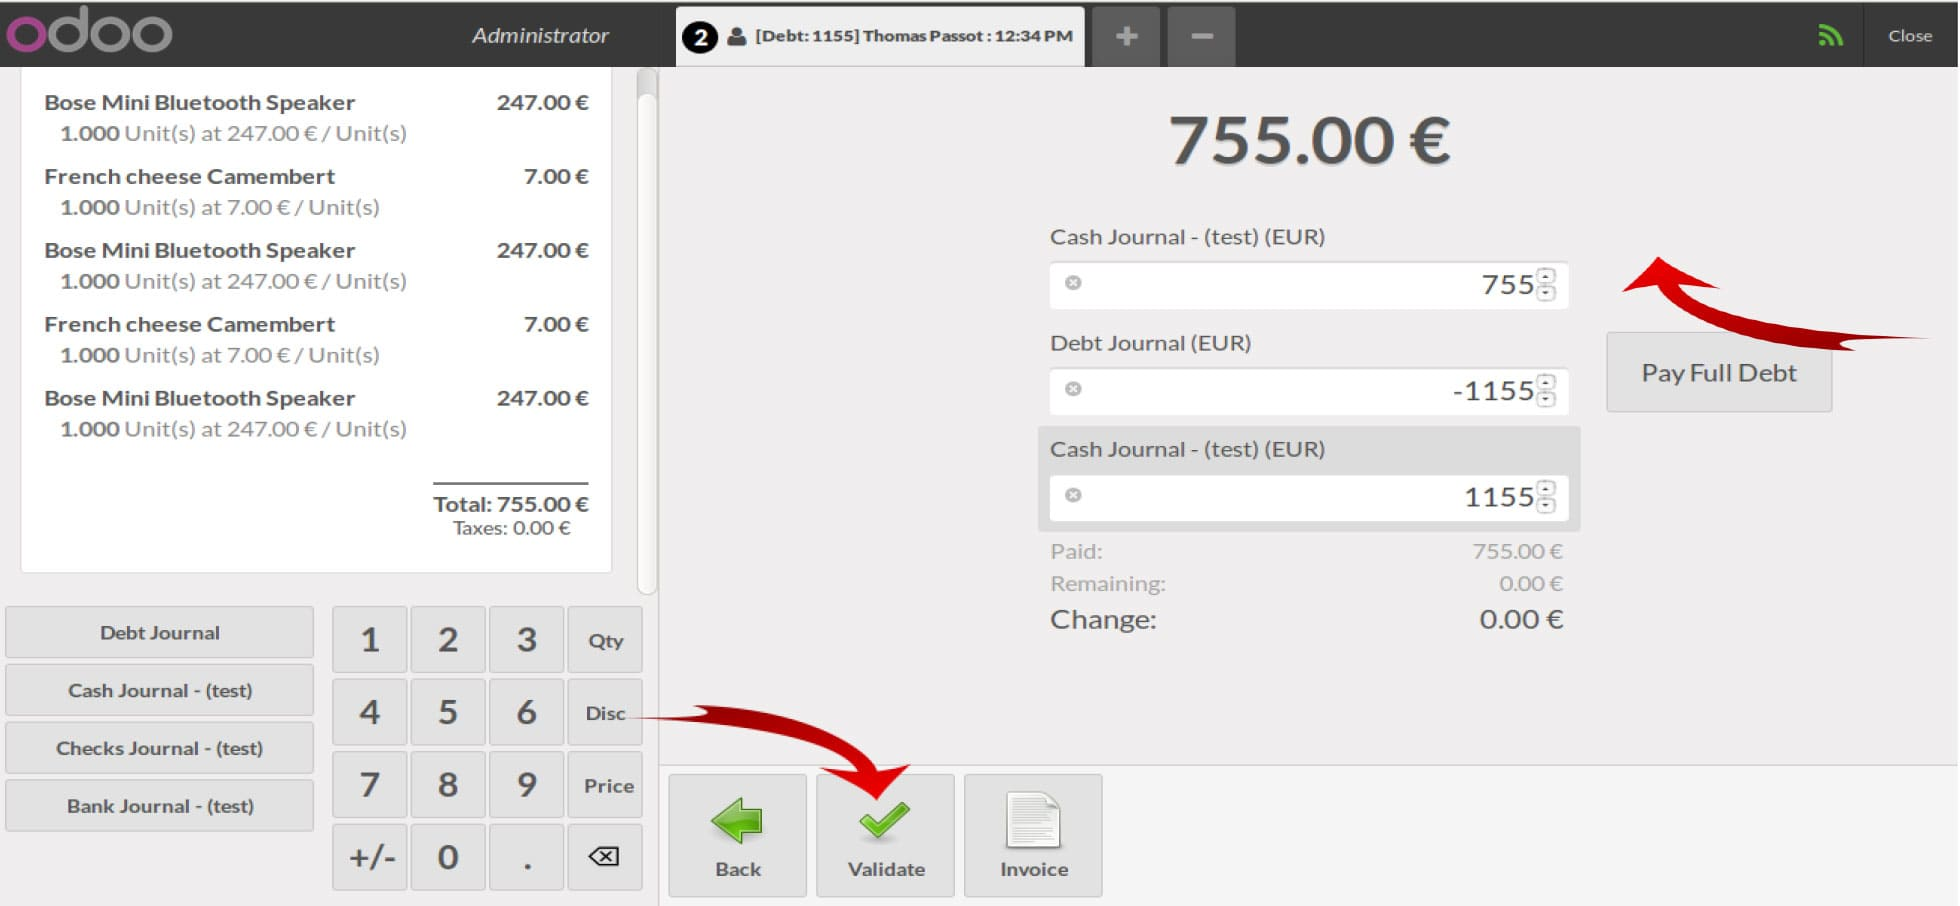 https/blog/Uploads/BlogImage/debt-notebook-14.jpg